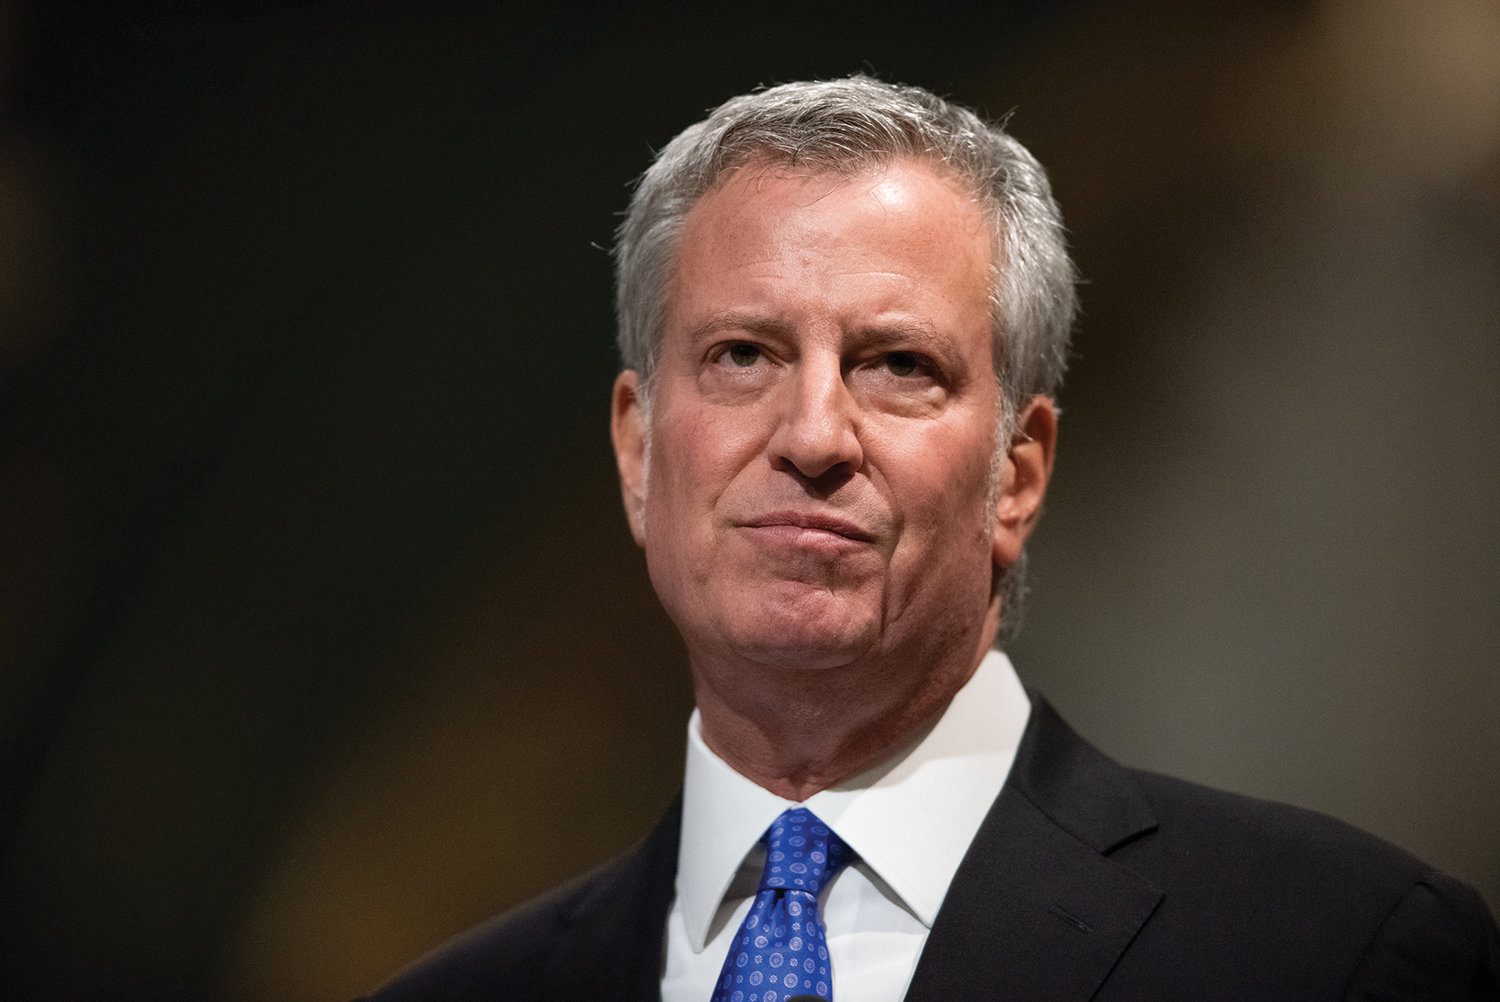 New York City Mayor Bill de Blasio remembers the homeless in his remarks at the service.